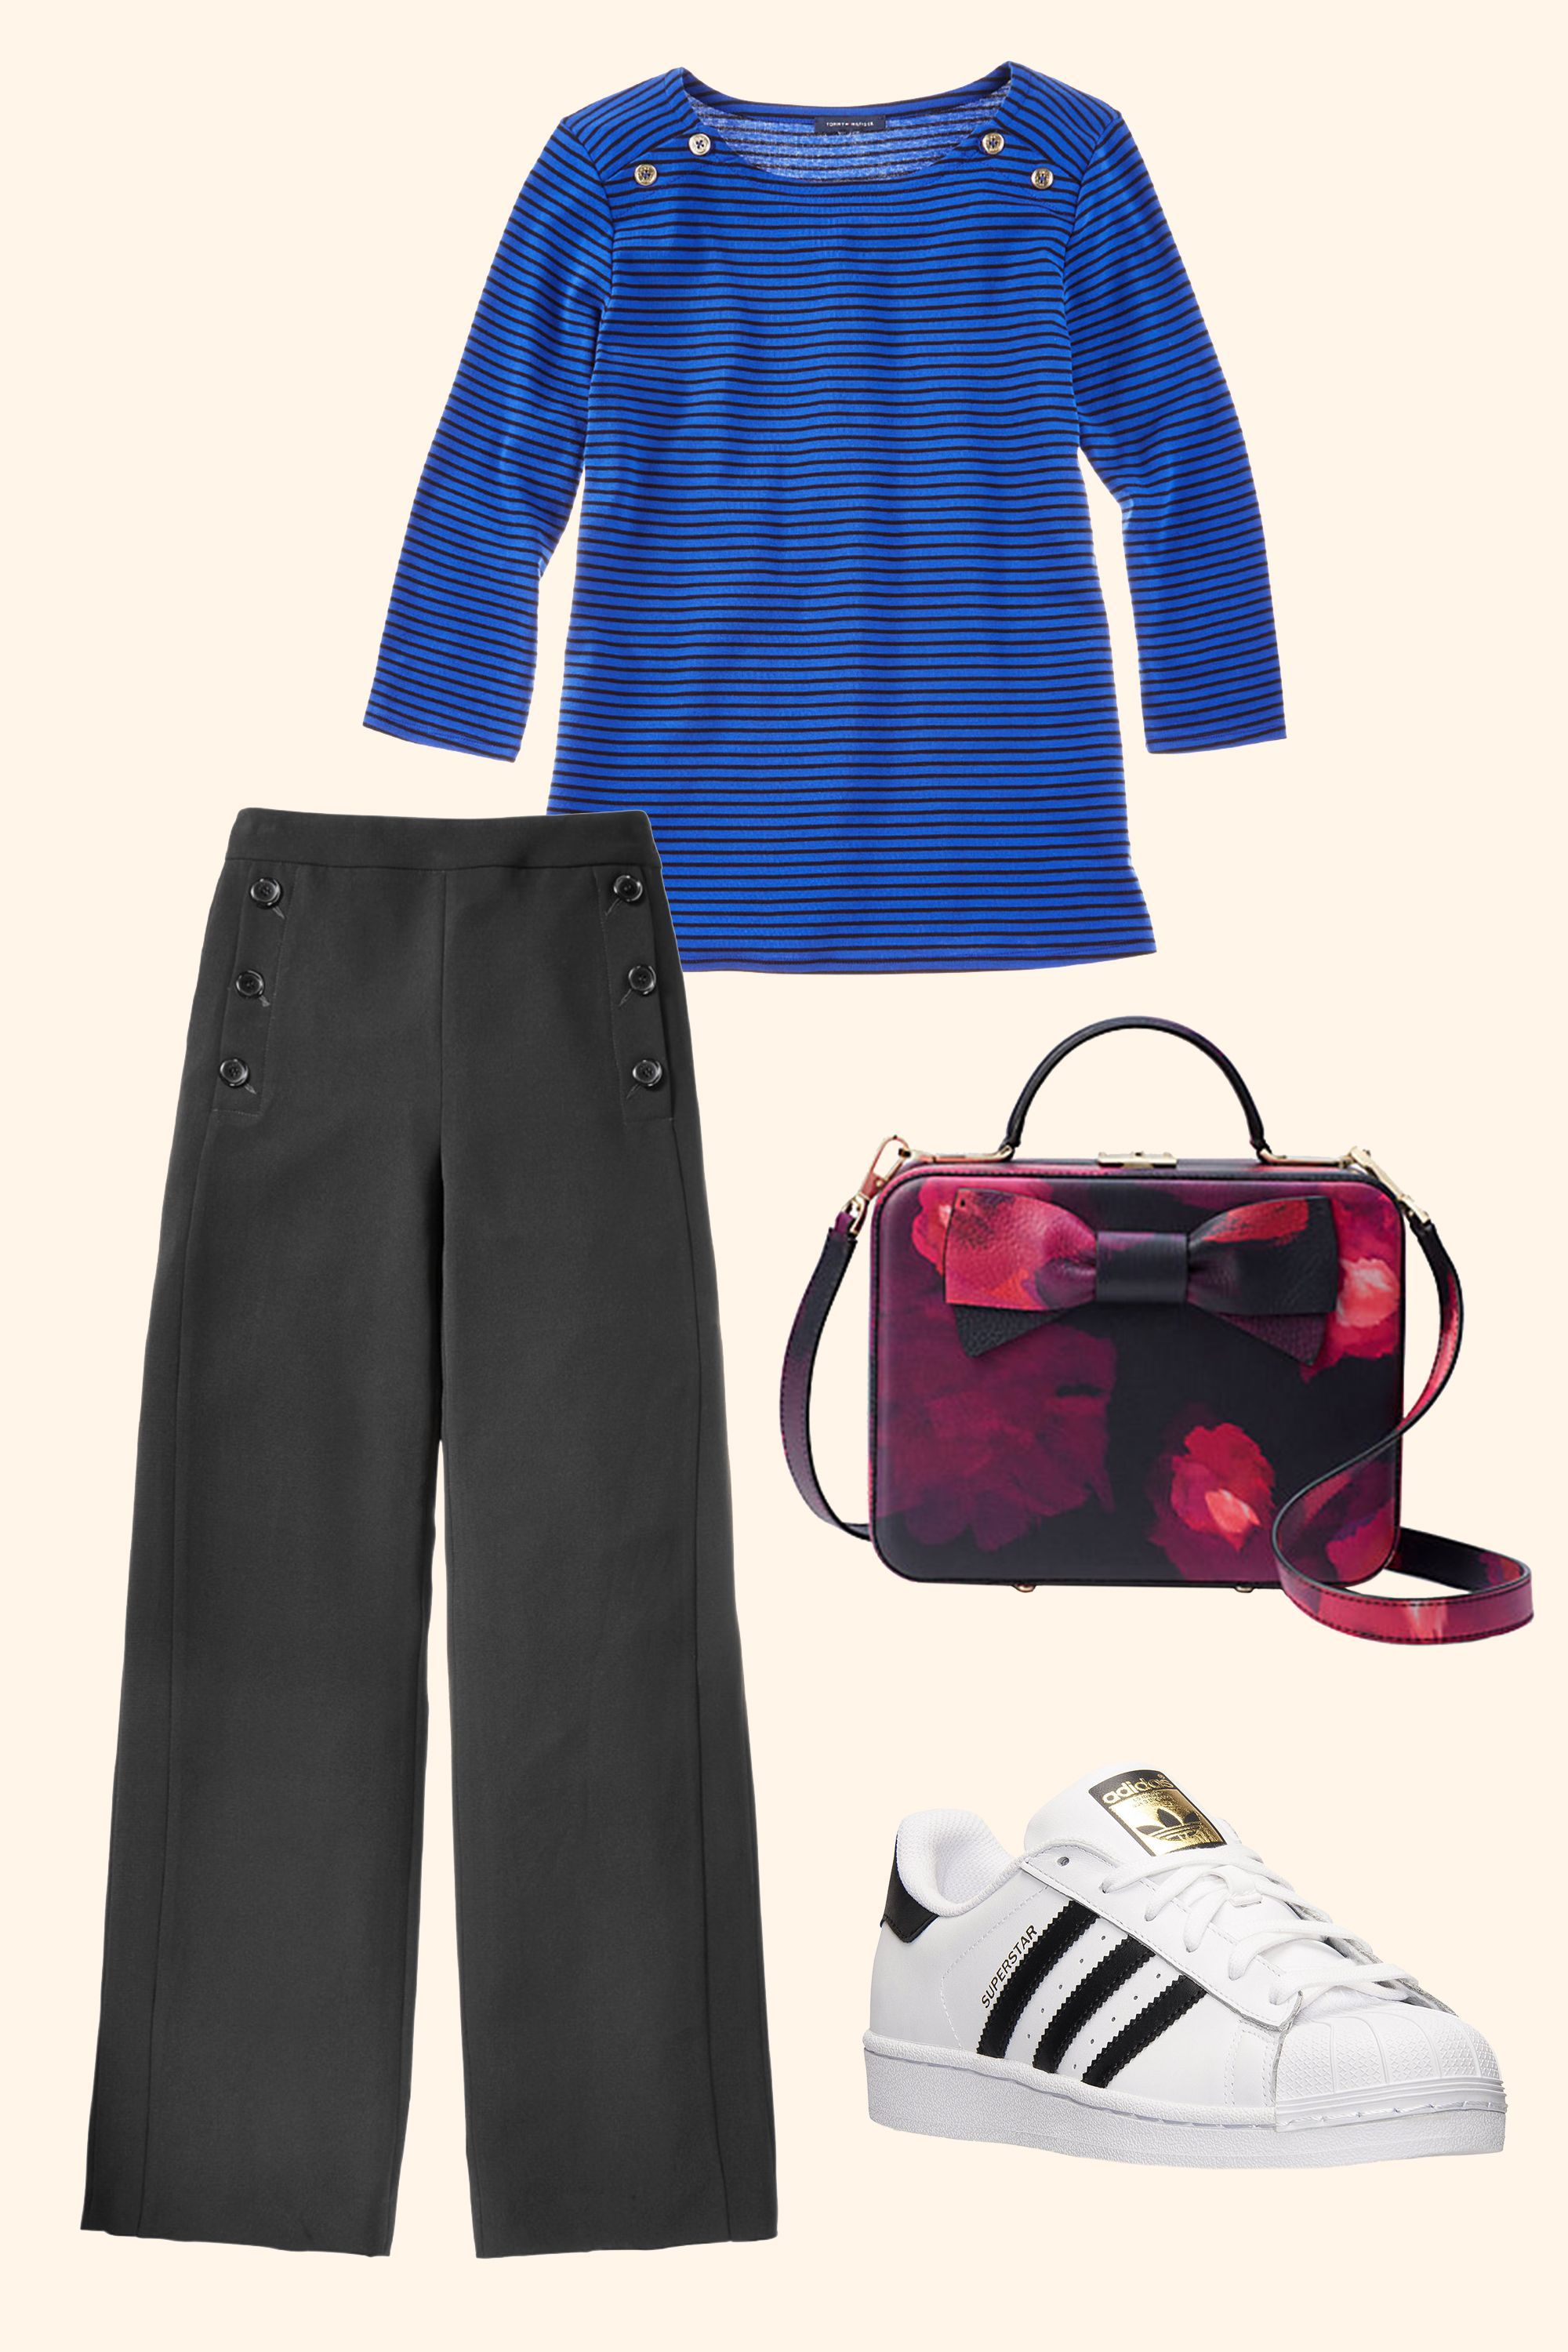 "<p>Wide leg sailor pants and a striped boatneck top are a no-brainer. Sporty, striped kicks and a lushly-printed box bag keep the combo anchored in modern day.  </p><p><strong data-redactor-tag=""strong"">BUY IT:</strong><span class=""redactor-invisible-space"" data-verified=""redactor"" data-redactor-tag=""span"" data-redactor-class=""redactor-invisible-space""> Tommy Hilfiger shirt, $50; <a href=""https://www.macys.com/shop/product/tommy-hilfiger-plus-size-cotton-striped-chambray-back-top?ID=4865735"" target=""_blank"" data-tracking-id=""recirc-text-link"">macys.com</a>. Kate Spade bag, $598; <a href=""https://www.katespade.com/products/madison-knollwood-street-rose-debra/PXRU7616.html?cgid=ks-handbags-satchels&dwvar_PXRU7616_color=098#start=37&cgid=ks-handbags-satchels"" target=""_blank"" data-tracking-id=""recirc-text-link"">katespade.com</a>. Adidas shoes, $80; <a href=""http://www.adidas.com/us/superstar-shoes/C77153.html?cm_mmc=AdieSEM_Feeds-_-GoogleProductAds-_-NA-_-C77153&cm_mmca1=US&cm_mmca2=NA&kpid=C77153&gclid=EAIaIQobChMIqqTD6NHh1QIVlIJpCh2poAX0EAQYASABEgLHwvD_BwE&gclsrc=aw.ds&dclid=CLPP4OrR4dUCFQa1swod_GEMWA"" target=""_blank"" data-tracking-id=""recirc-text-link"">adidas.com</a>. DKNY pants, $109; <a href=""https://www.macys.com/shop/product/dkny-crepe-wide-leg-pants?ID=4945307&cm_mmc=carat_dis-_-sep2_nopro_auth_rtw_ffash_tentpole_display_w7080033_11696-_-1339154-_-09052017_10052017"" target=""_blank"" data-tracking-id=""recirc-text-link"">macys.com</a></span></p>"